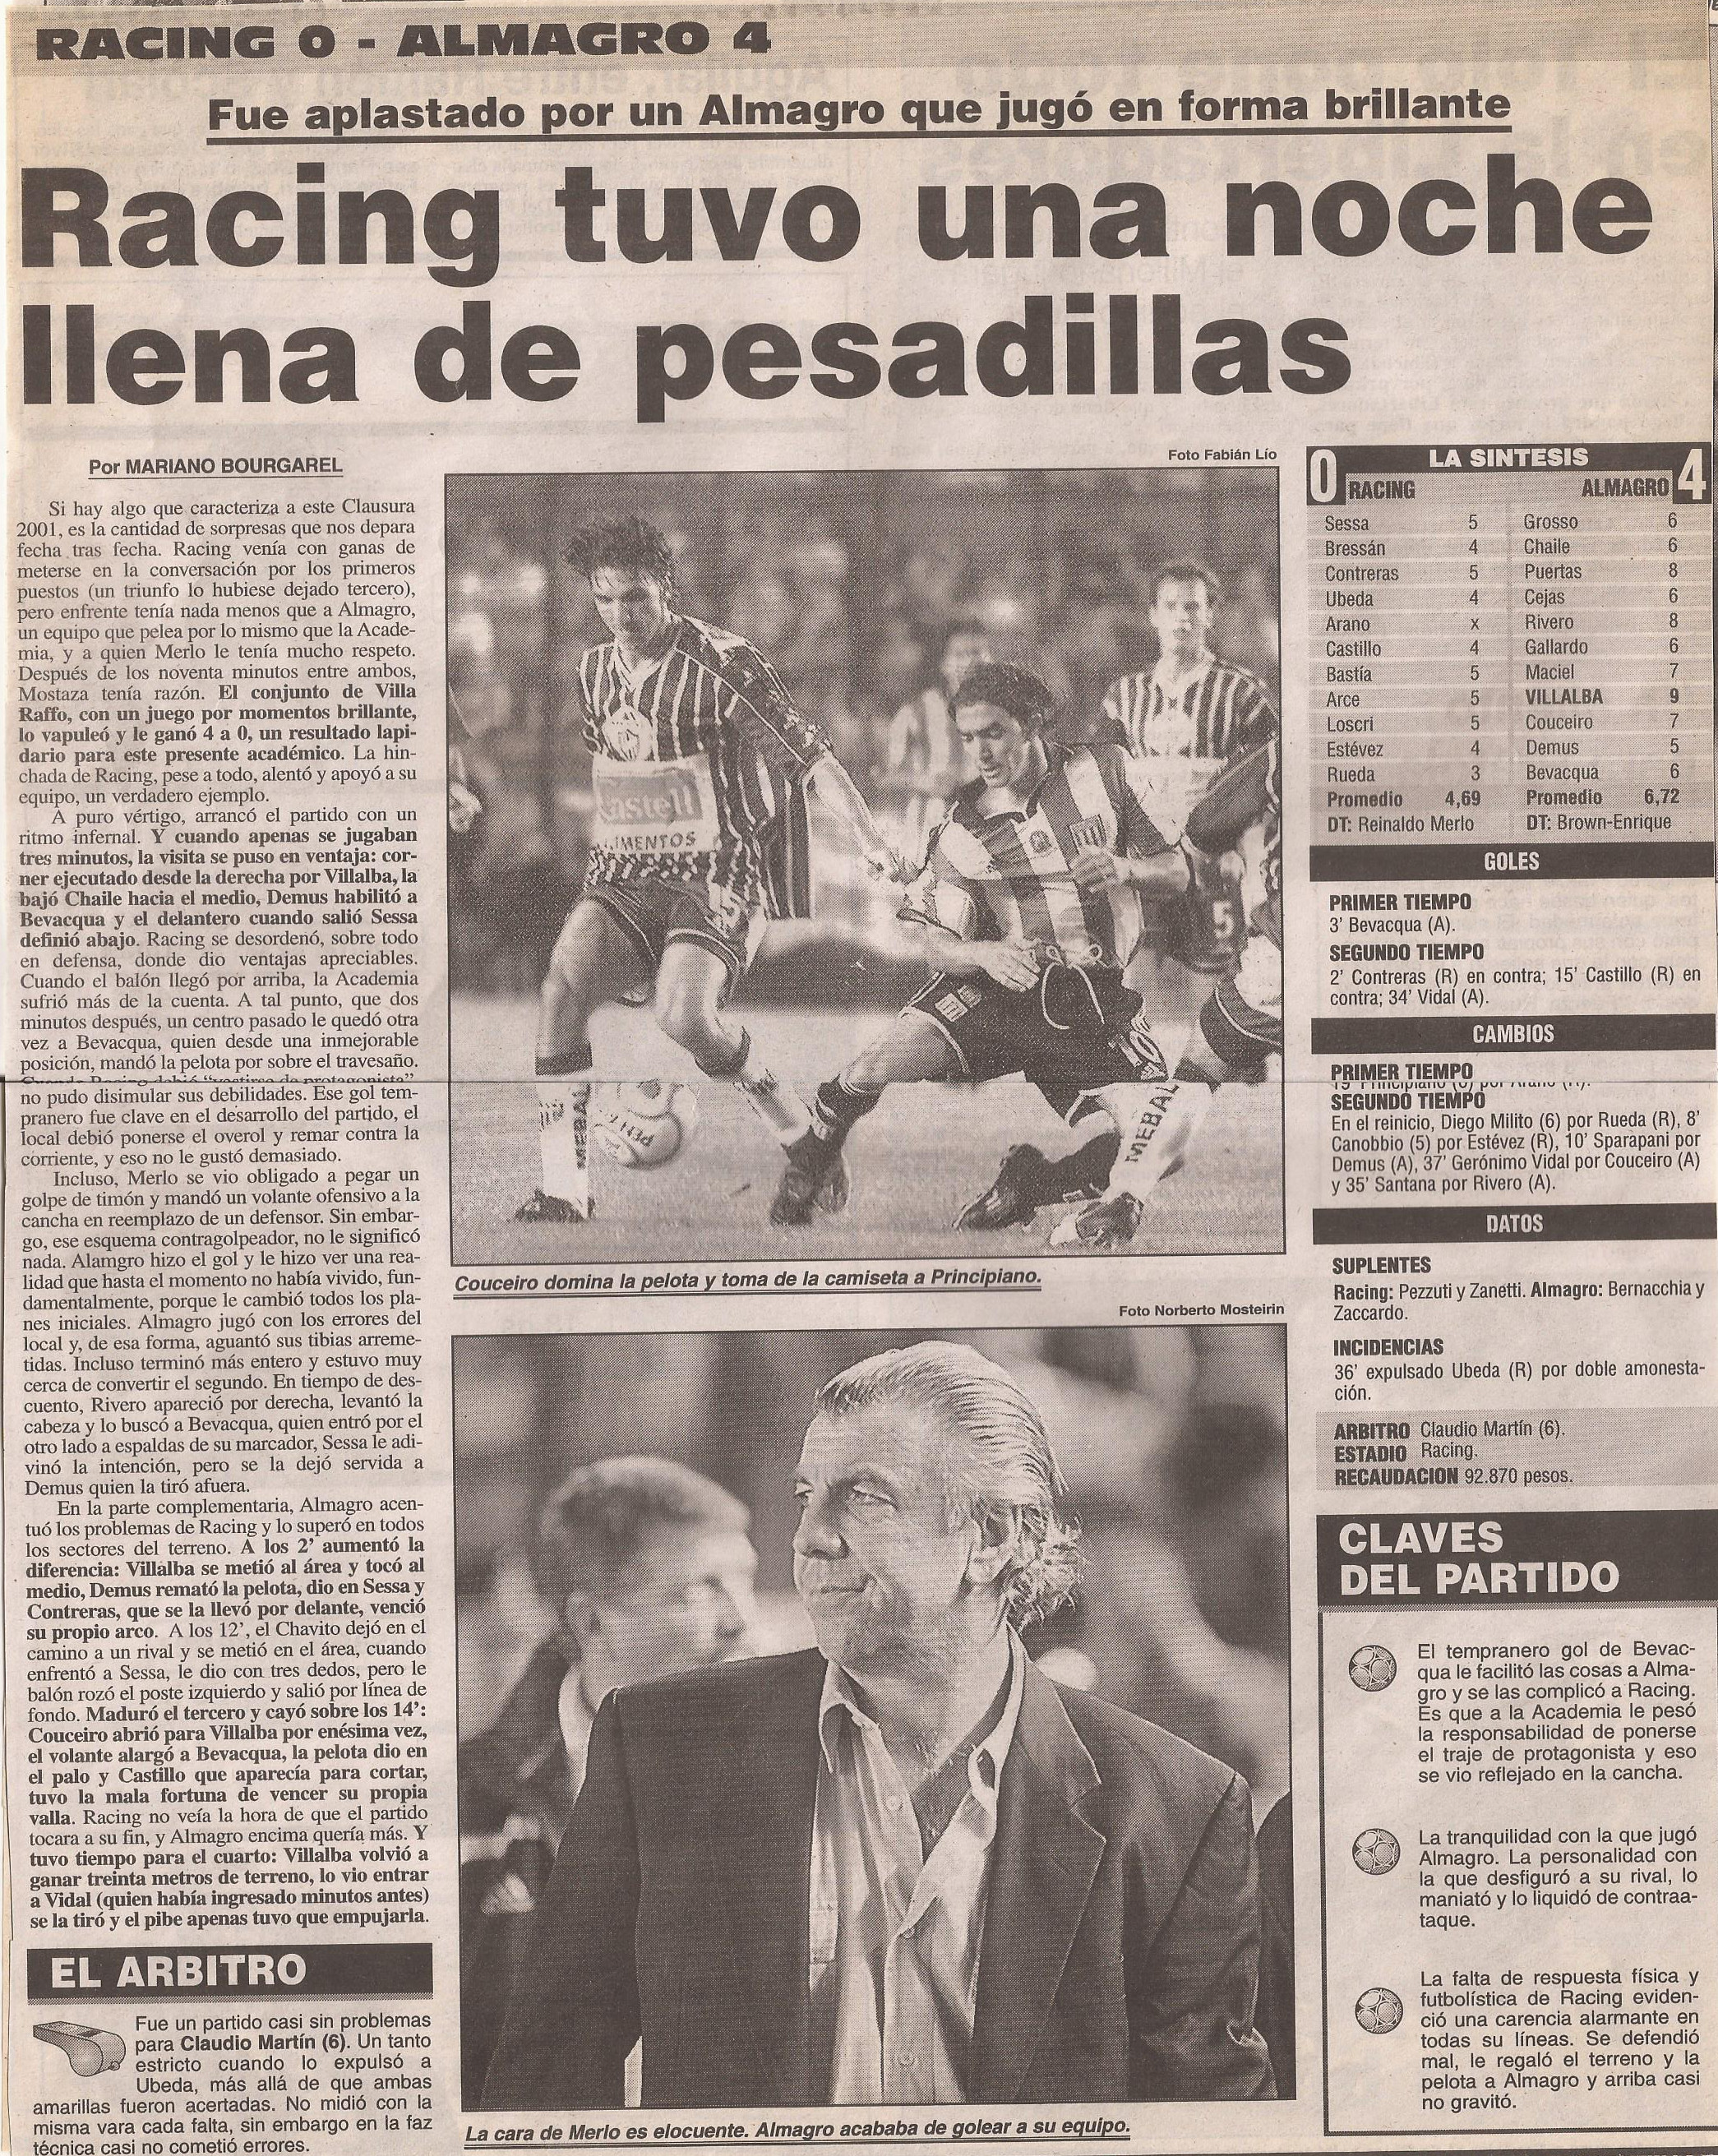 2000-01 Primera Division - Racing vs Almagro- Diario Popular